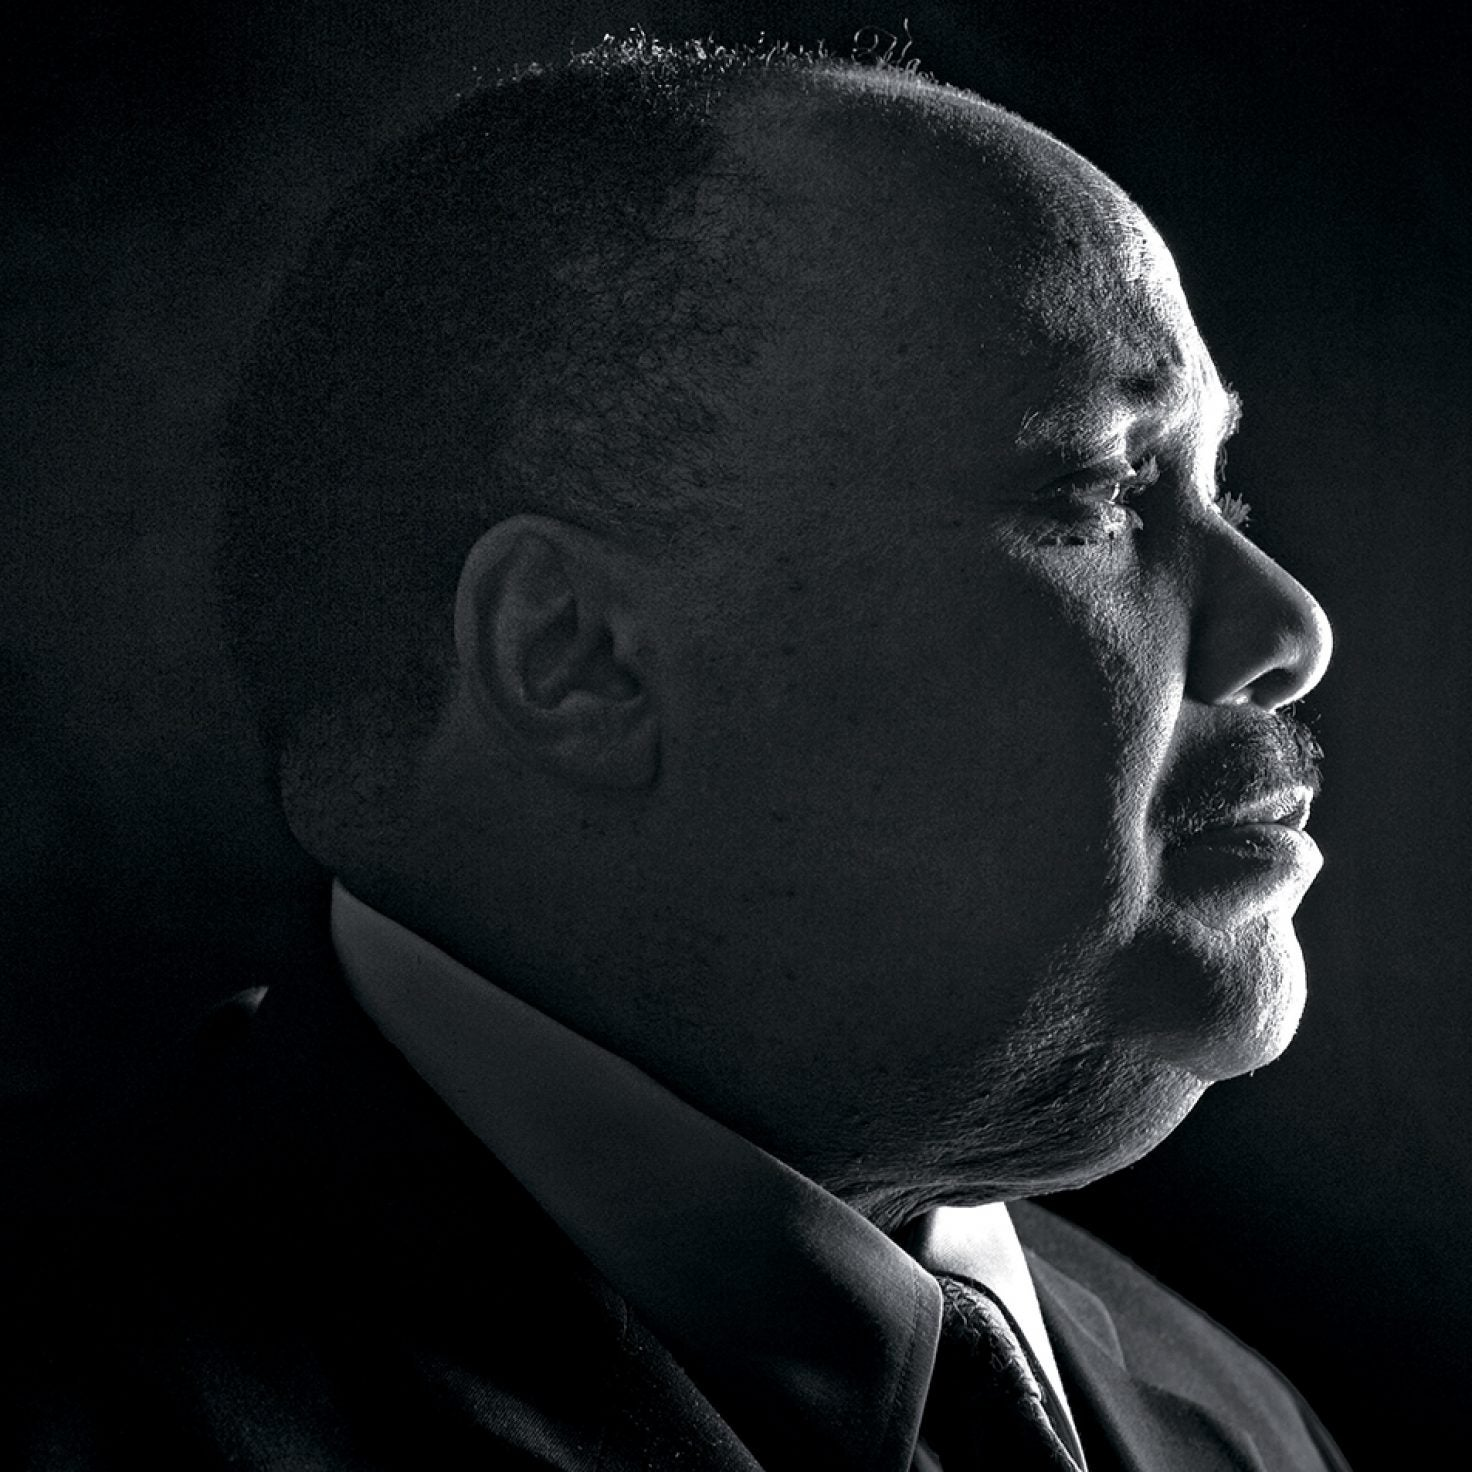 Martin Luther King III Speaks About His Father's Legacy